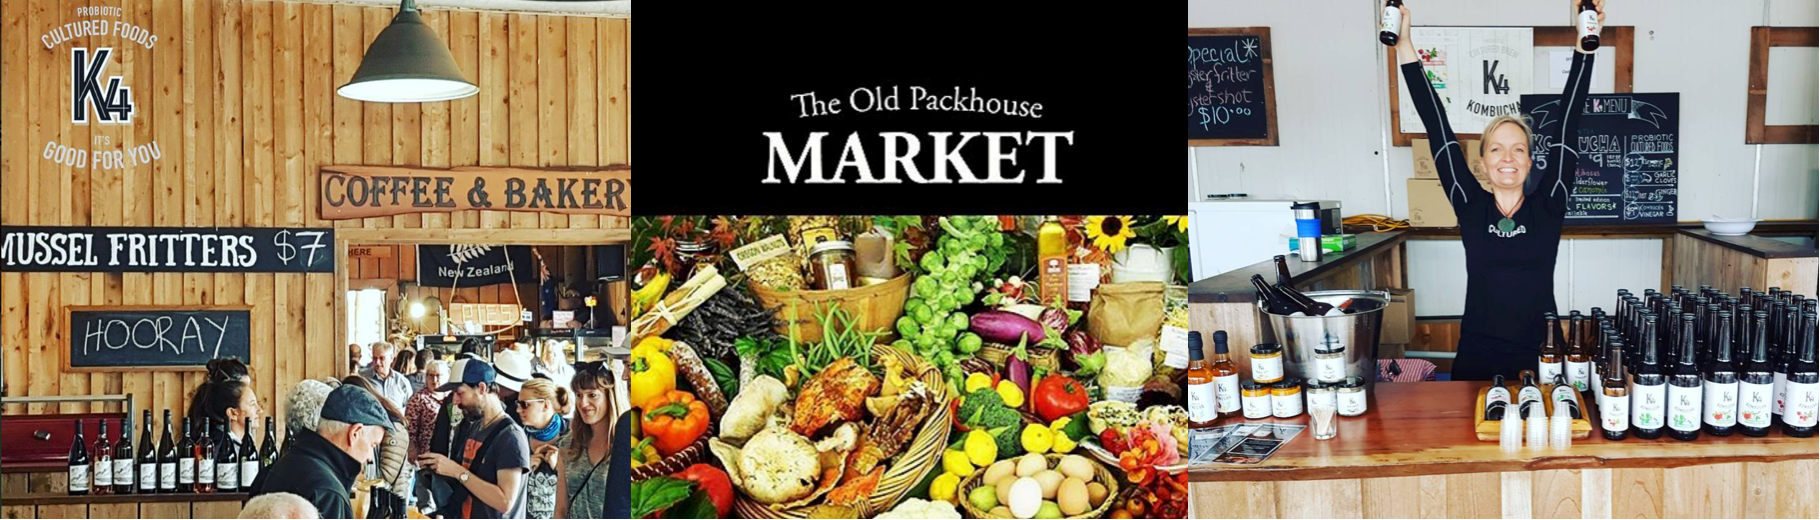 An image of a busy marketplace at The Old Packhouse Markets in Kerikeri, the image shows lots of stall holders and lots of customers who are attending the stalls to taste, test and try a range of different products (Kombucha, fermented foods, wine, hangi, seafood, coffee, pies, cake, fresh vegetables), the marketplace is rich in timber panelling and signworking.